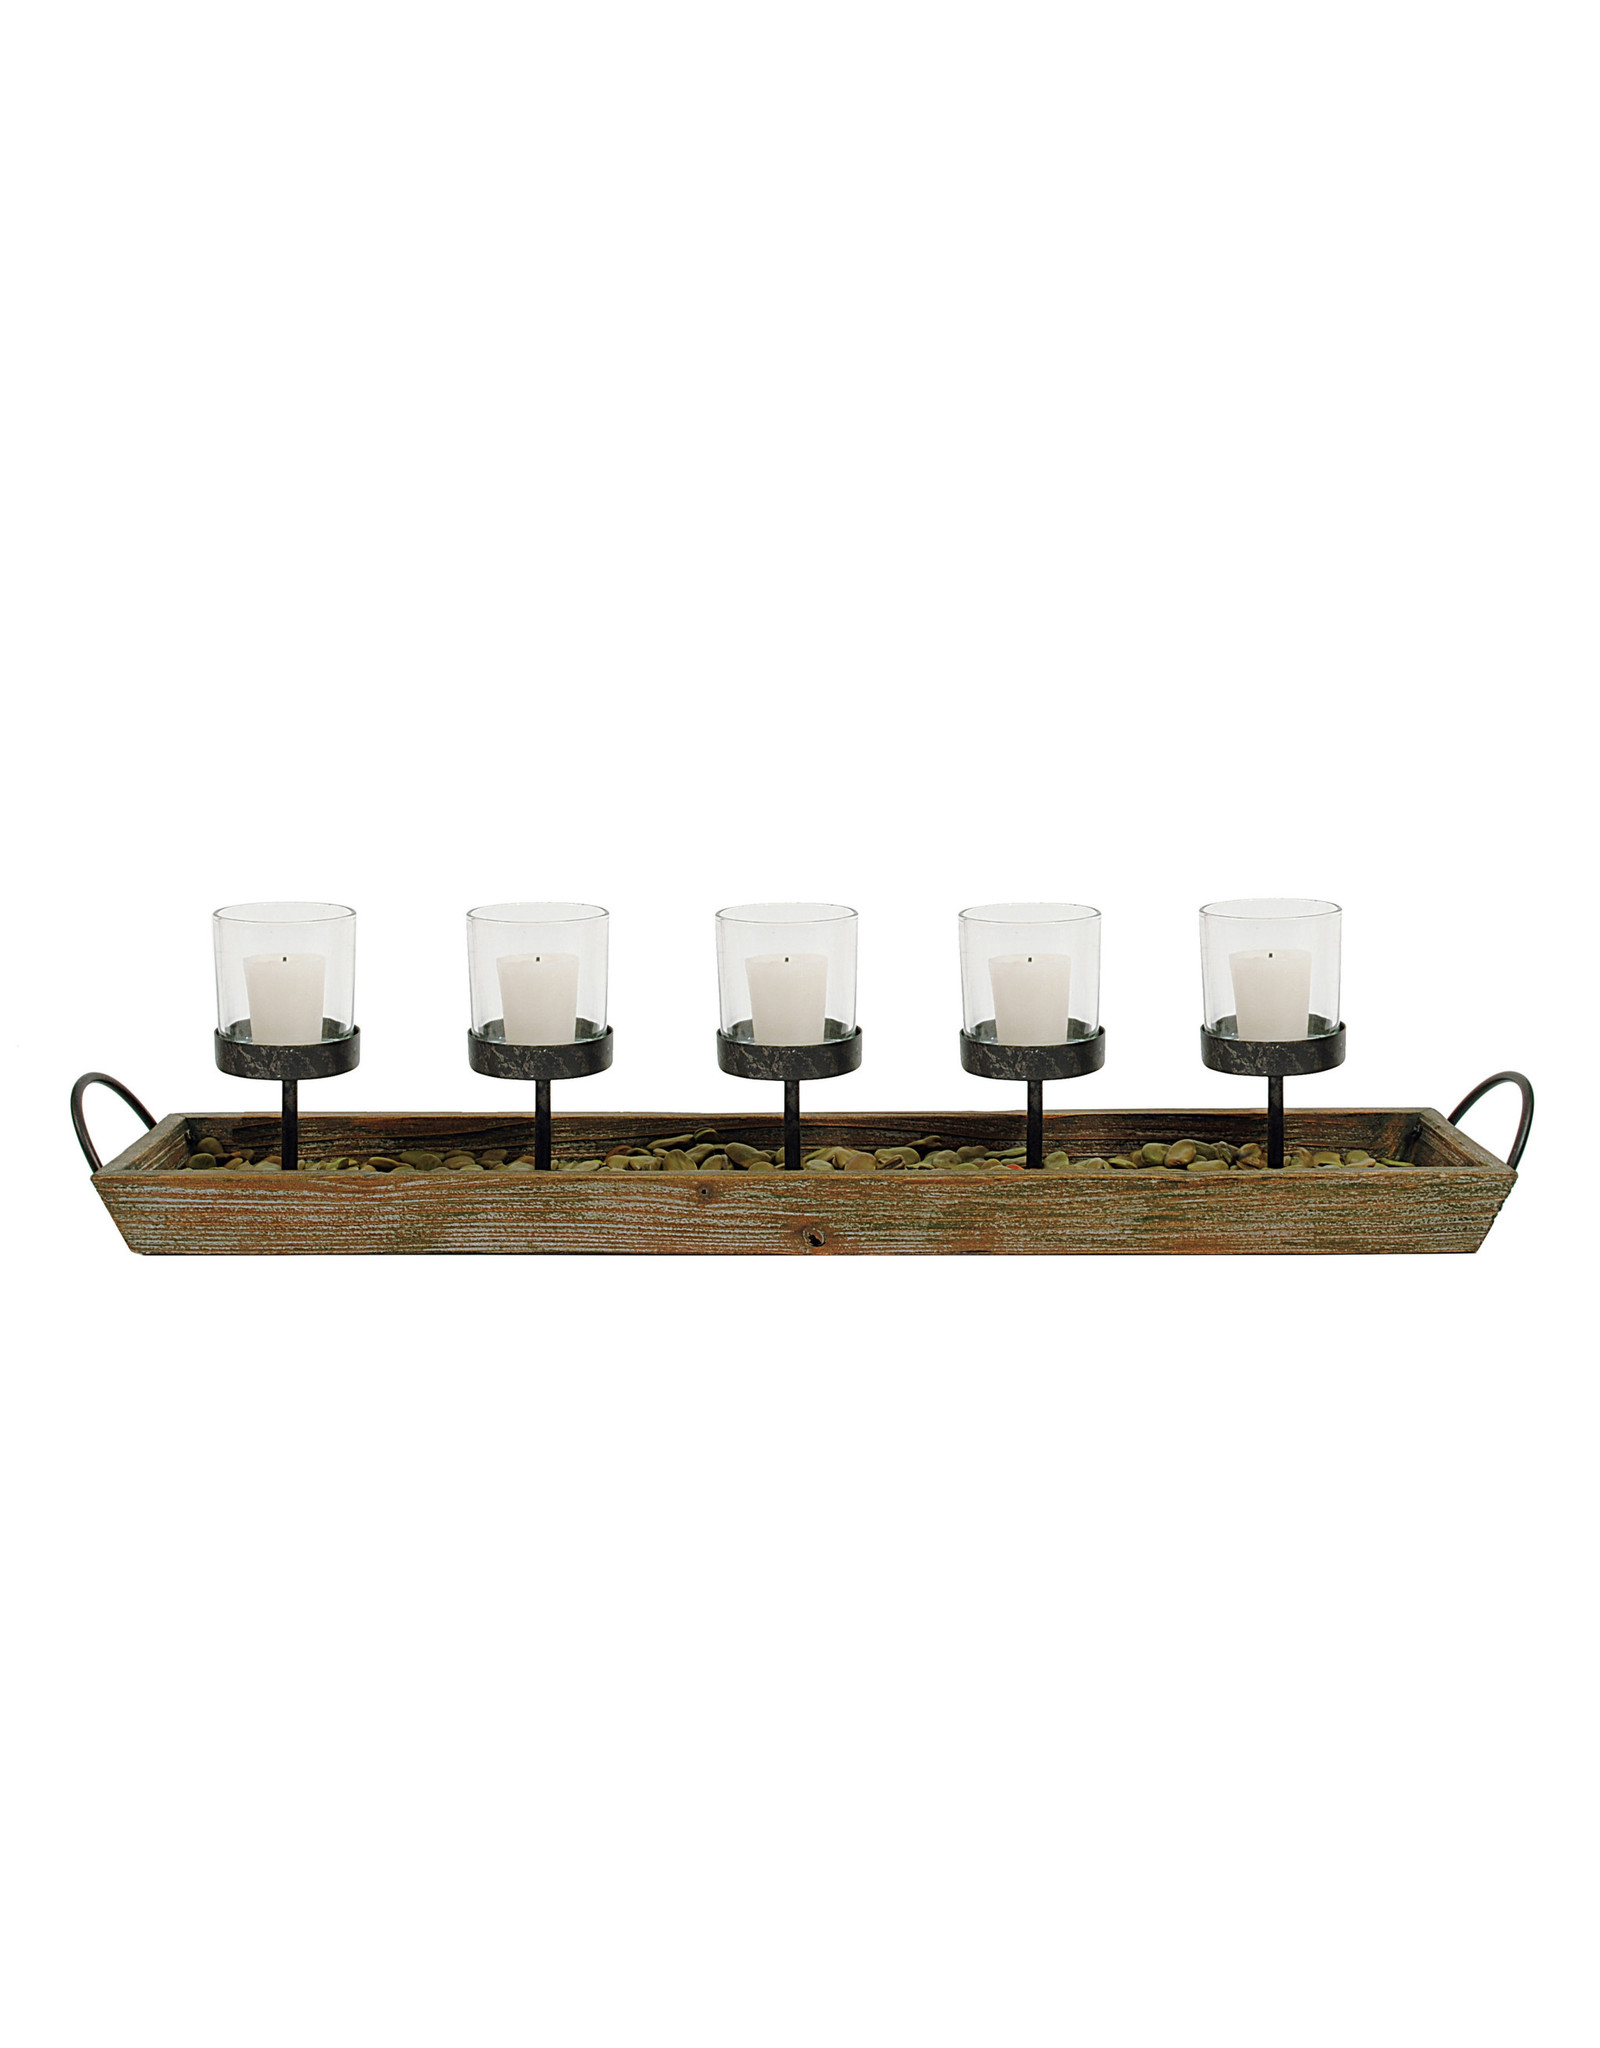 Candleholders in Wood Tray with Handles